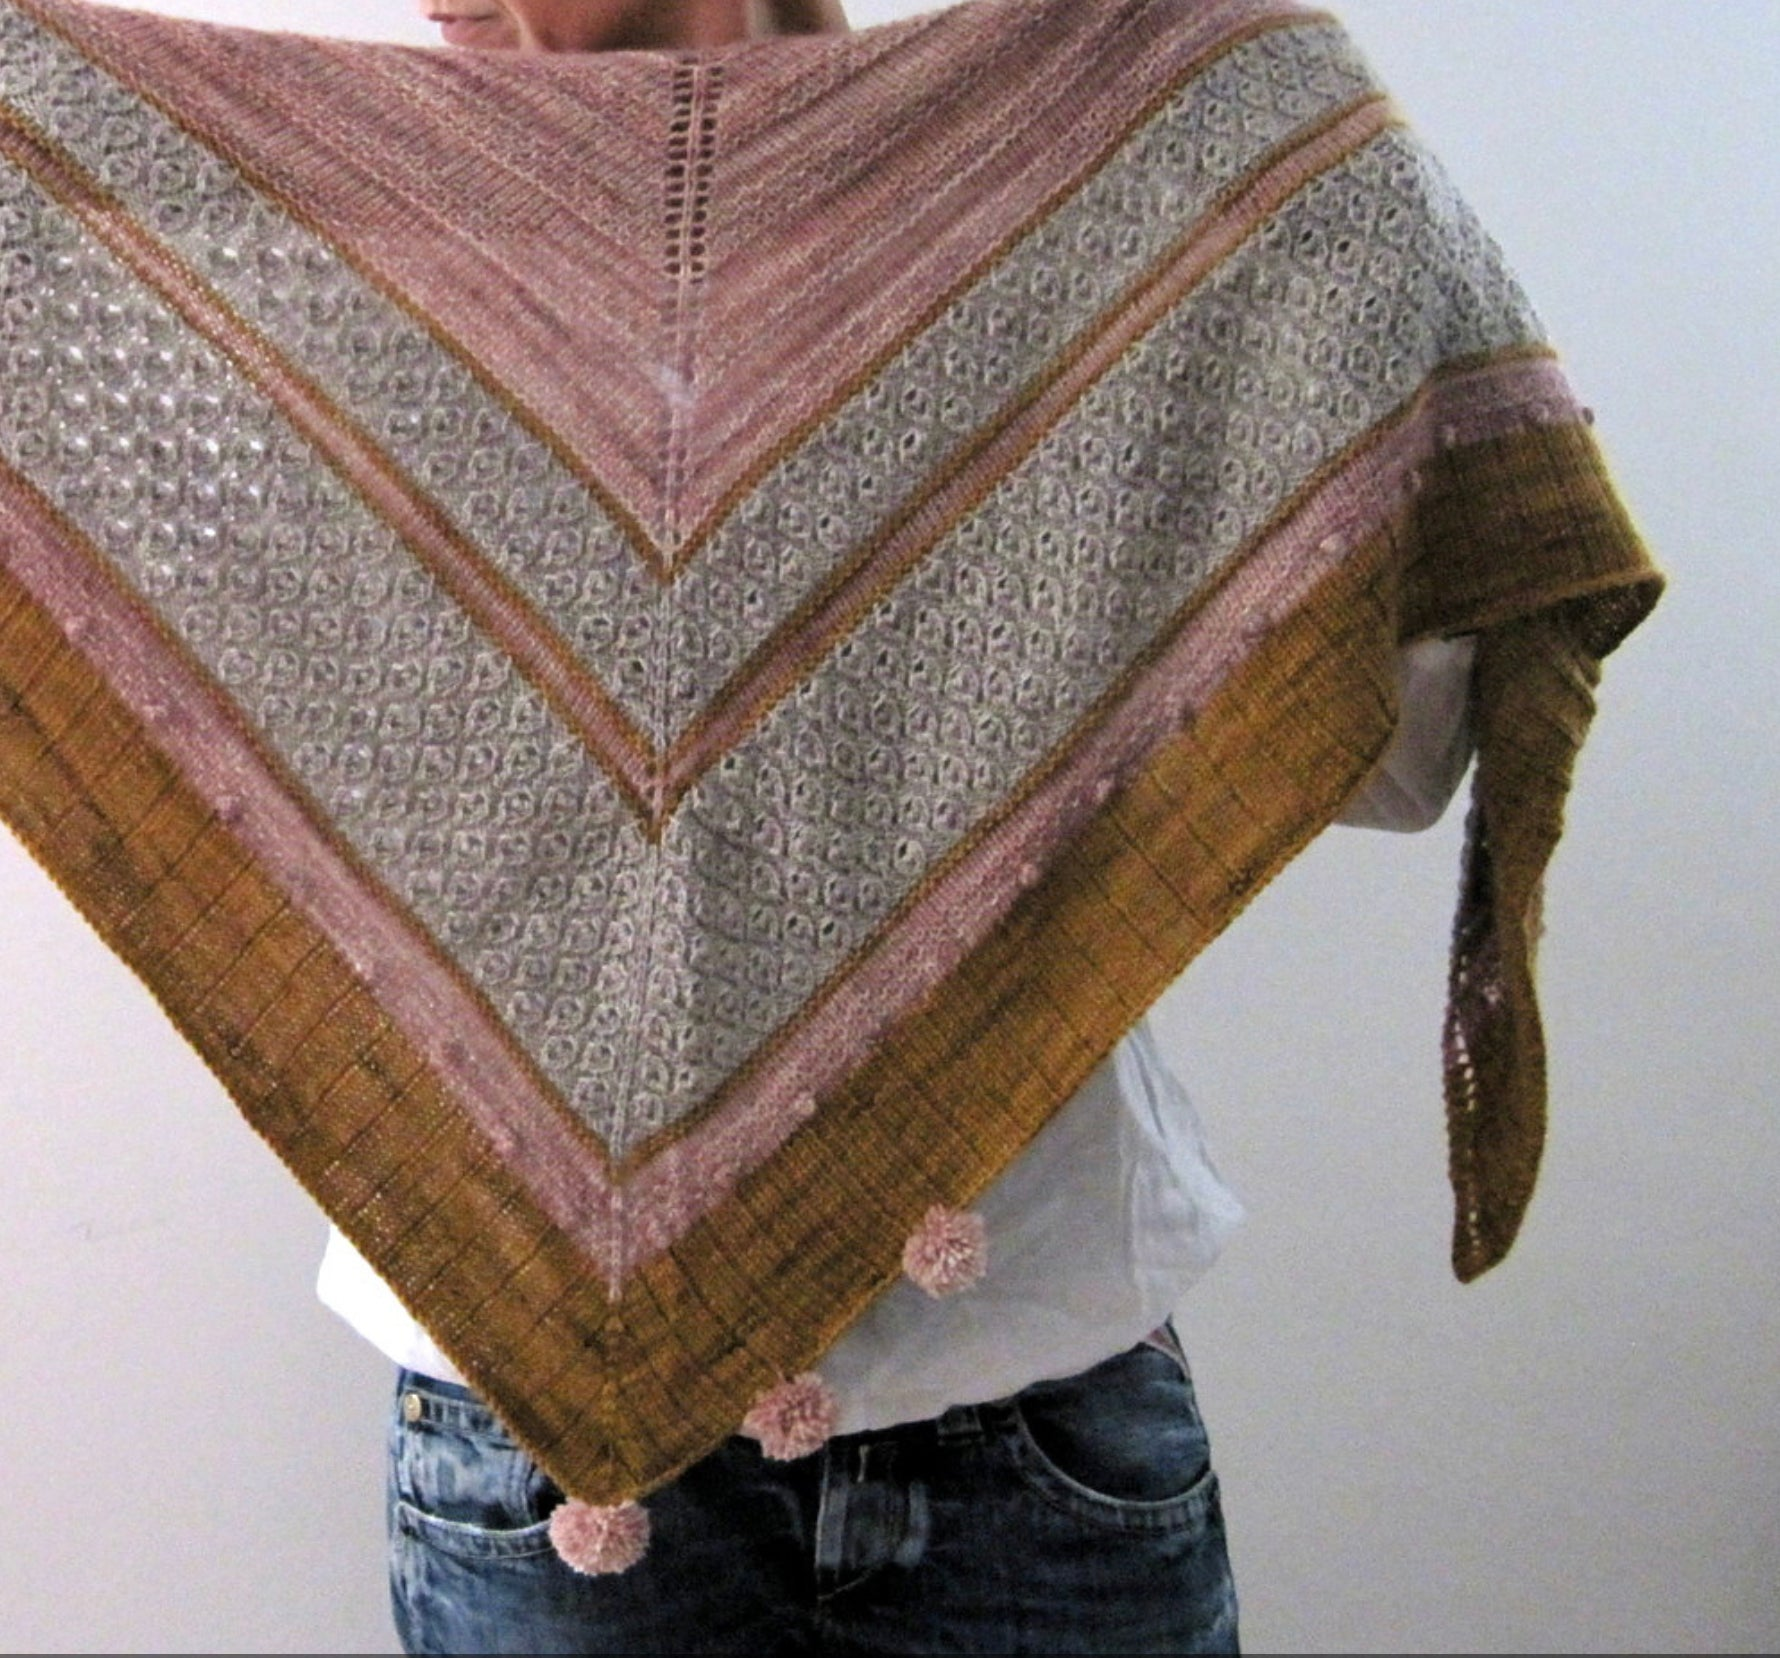 GIRL'S BEST FRIEND SHAWL KIT, Toad Hollow Yarns